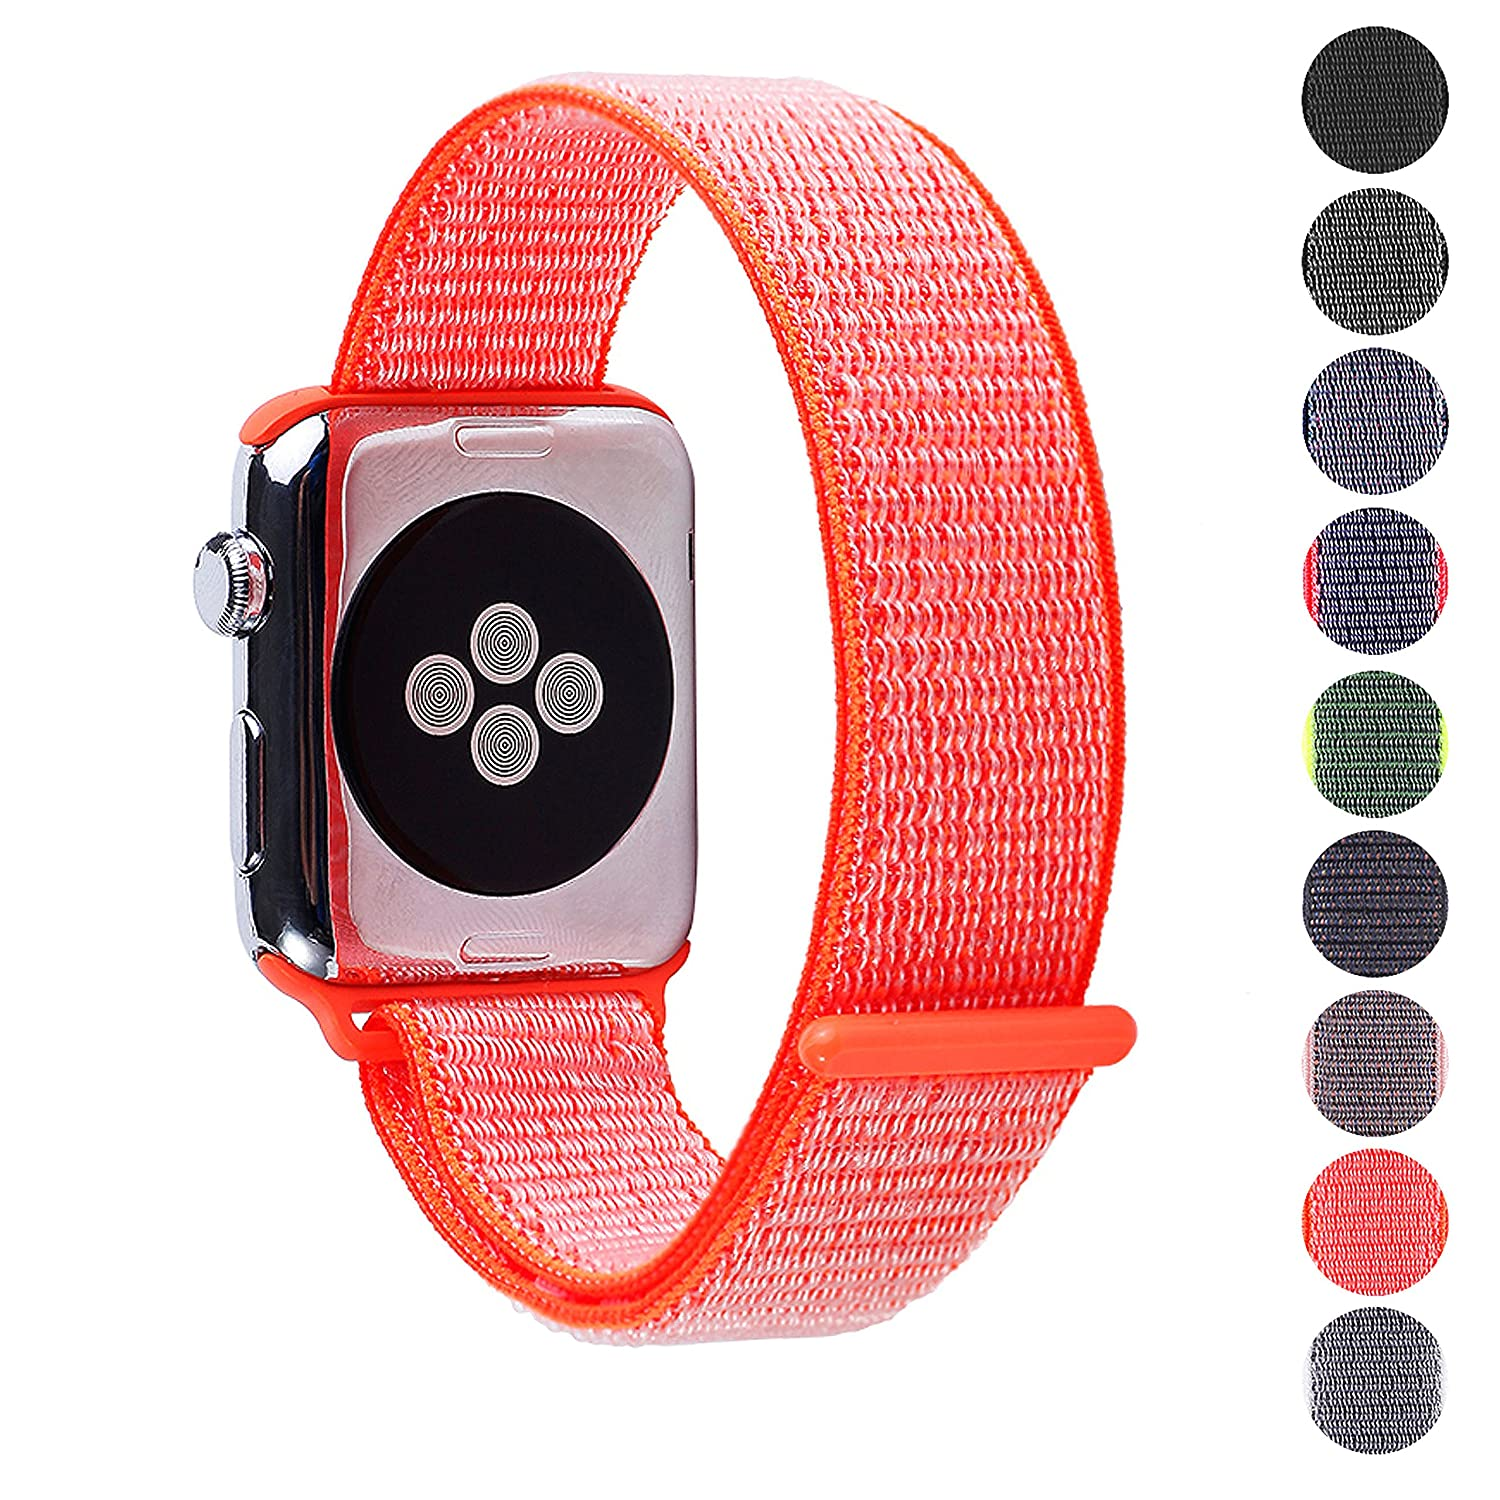 Woven Nylon Replacement Apple Watch Band By Pantheon, Sport Loop Edition, For Men Or Women, Strap Fits The 38mm Or 42mm Apple I Watch, Compatible Series 1, 2, 3, Nike by Pantheon